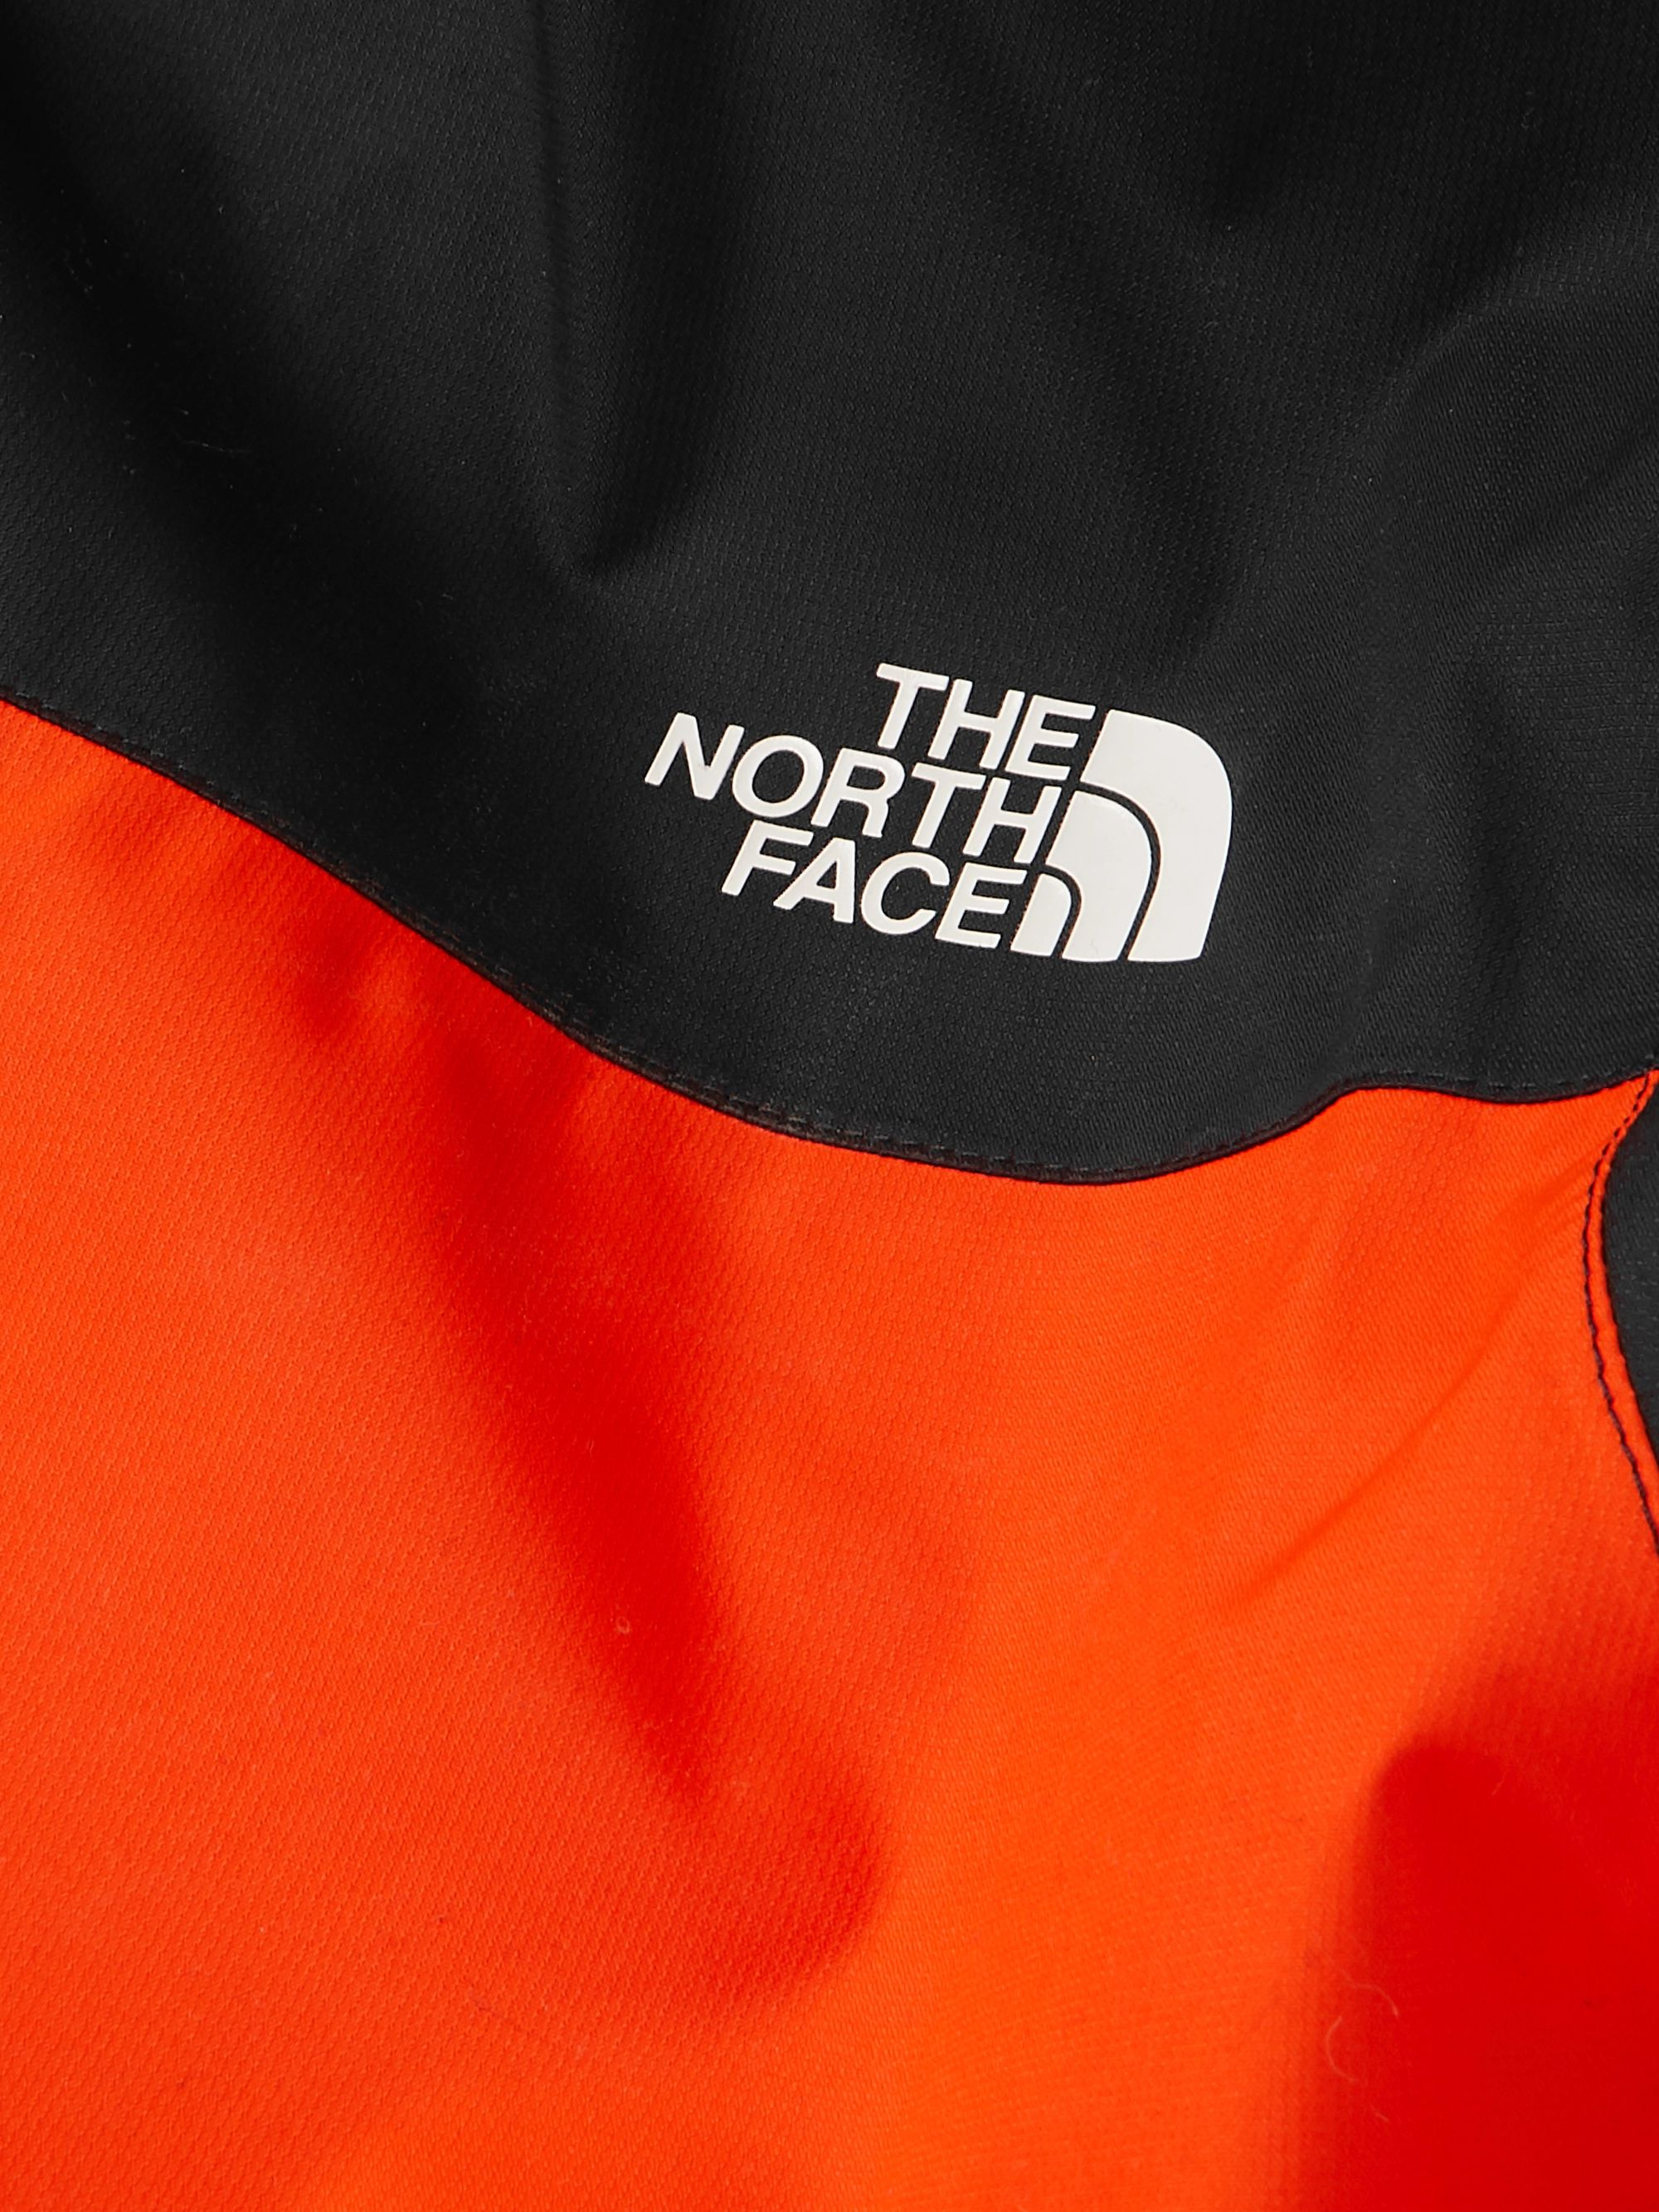 The North Face Mountain Q Colour-Block Waterproof DryVent Hooded Jacket